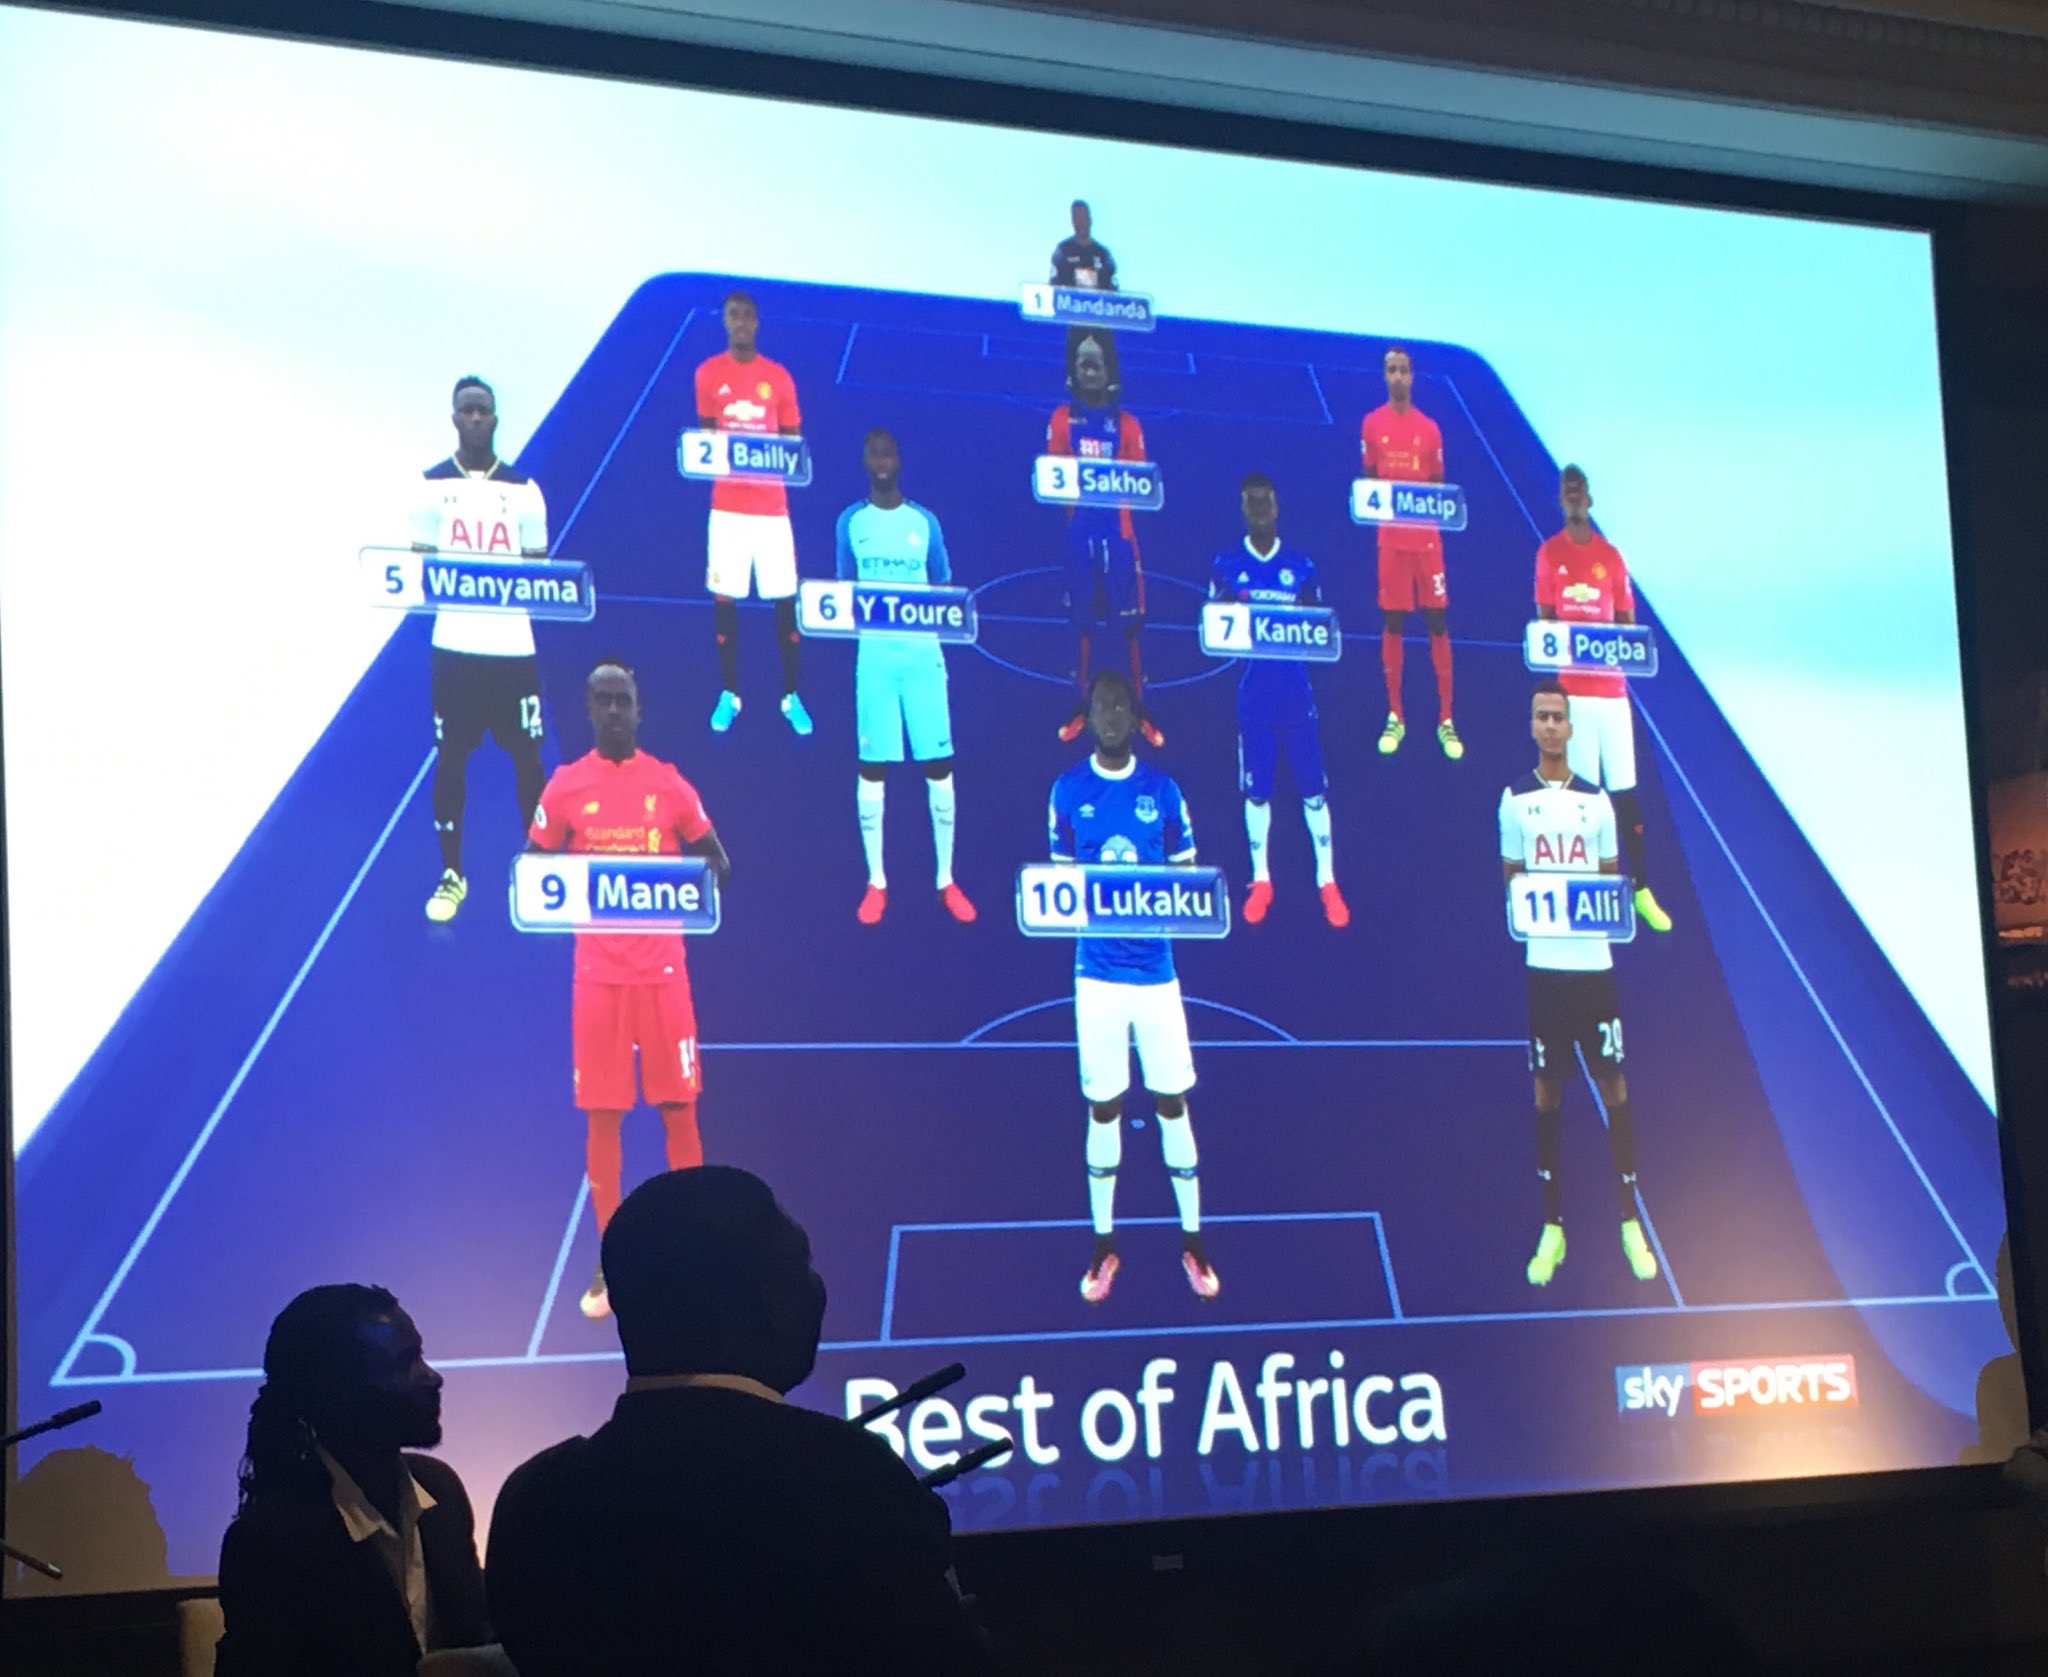 Best of Africa team 2017